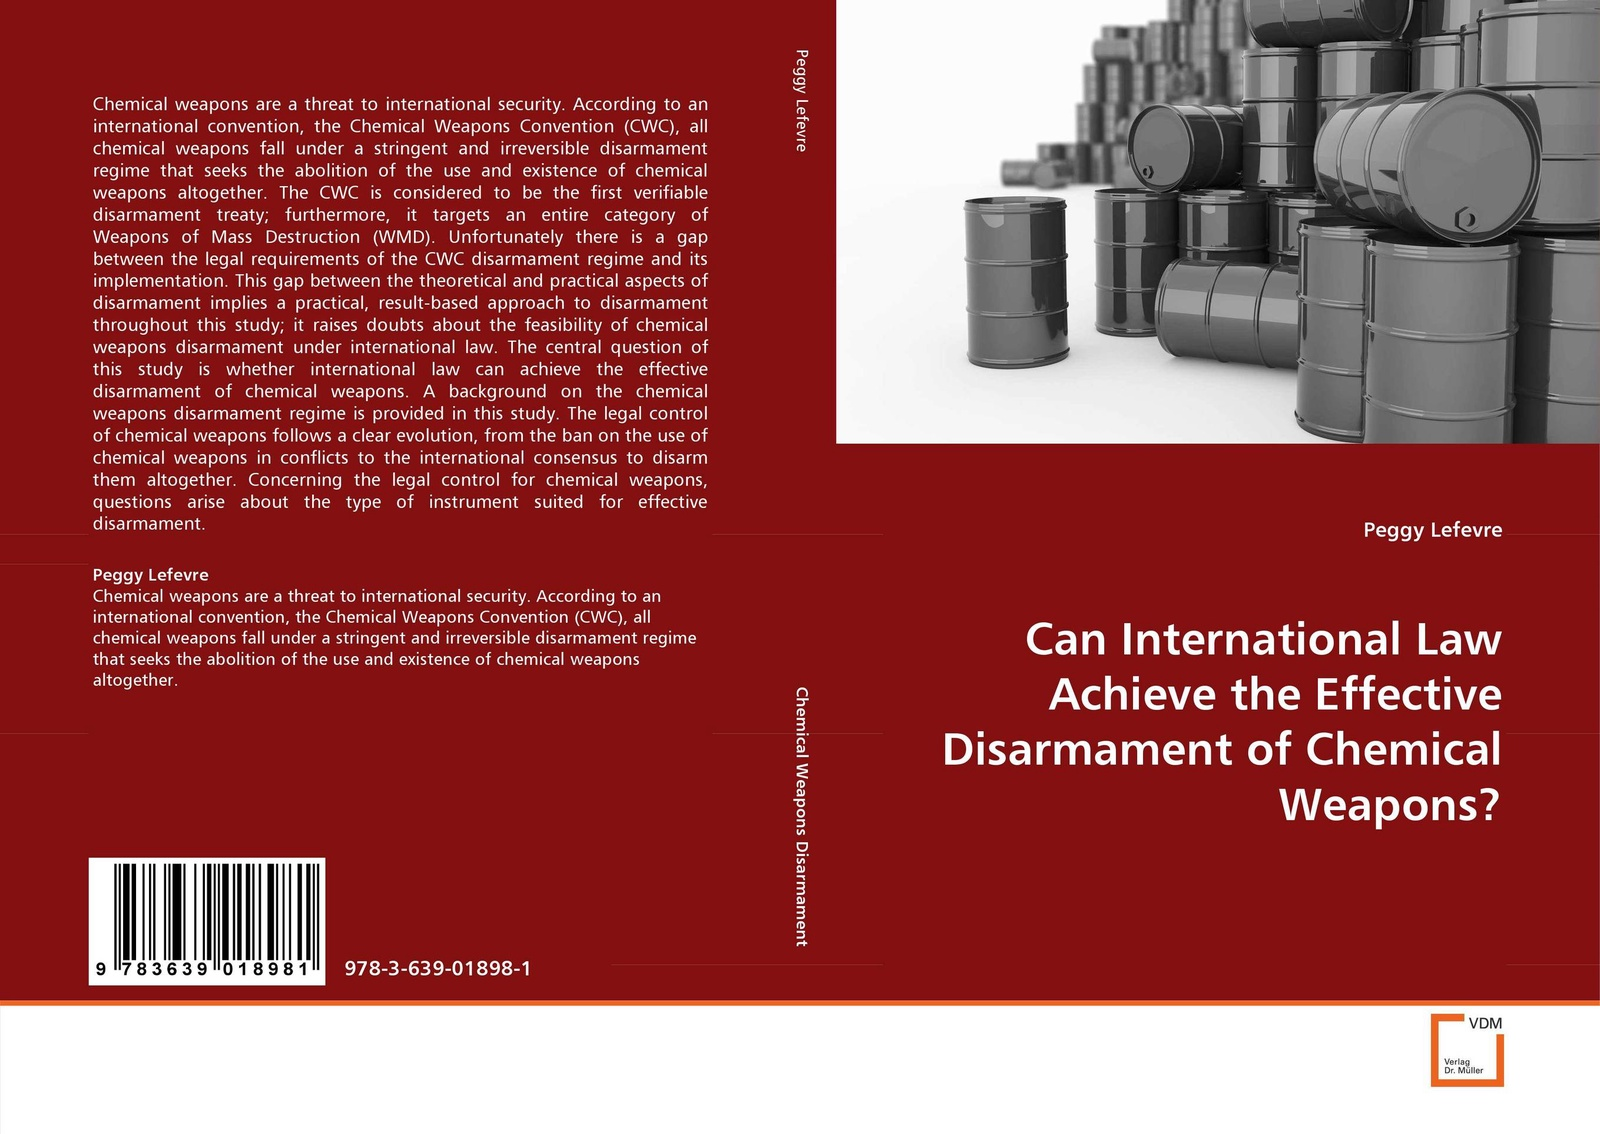 Peggy Lefevre Can International Law Achieve the Effective Disarmament of Chemical Weapons? weapons of fitness